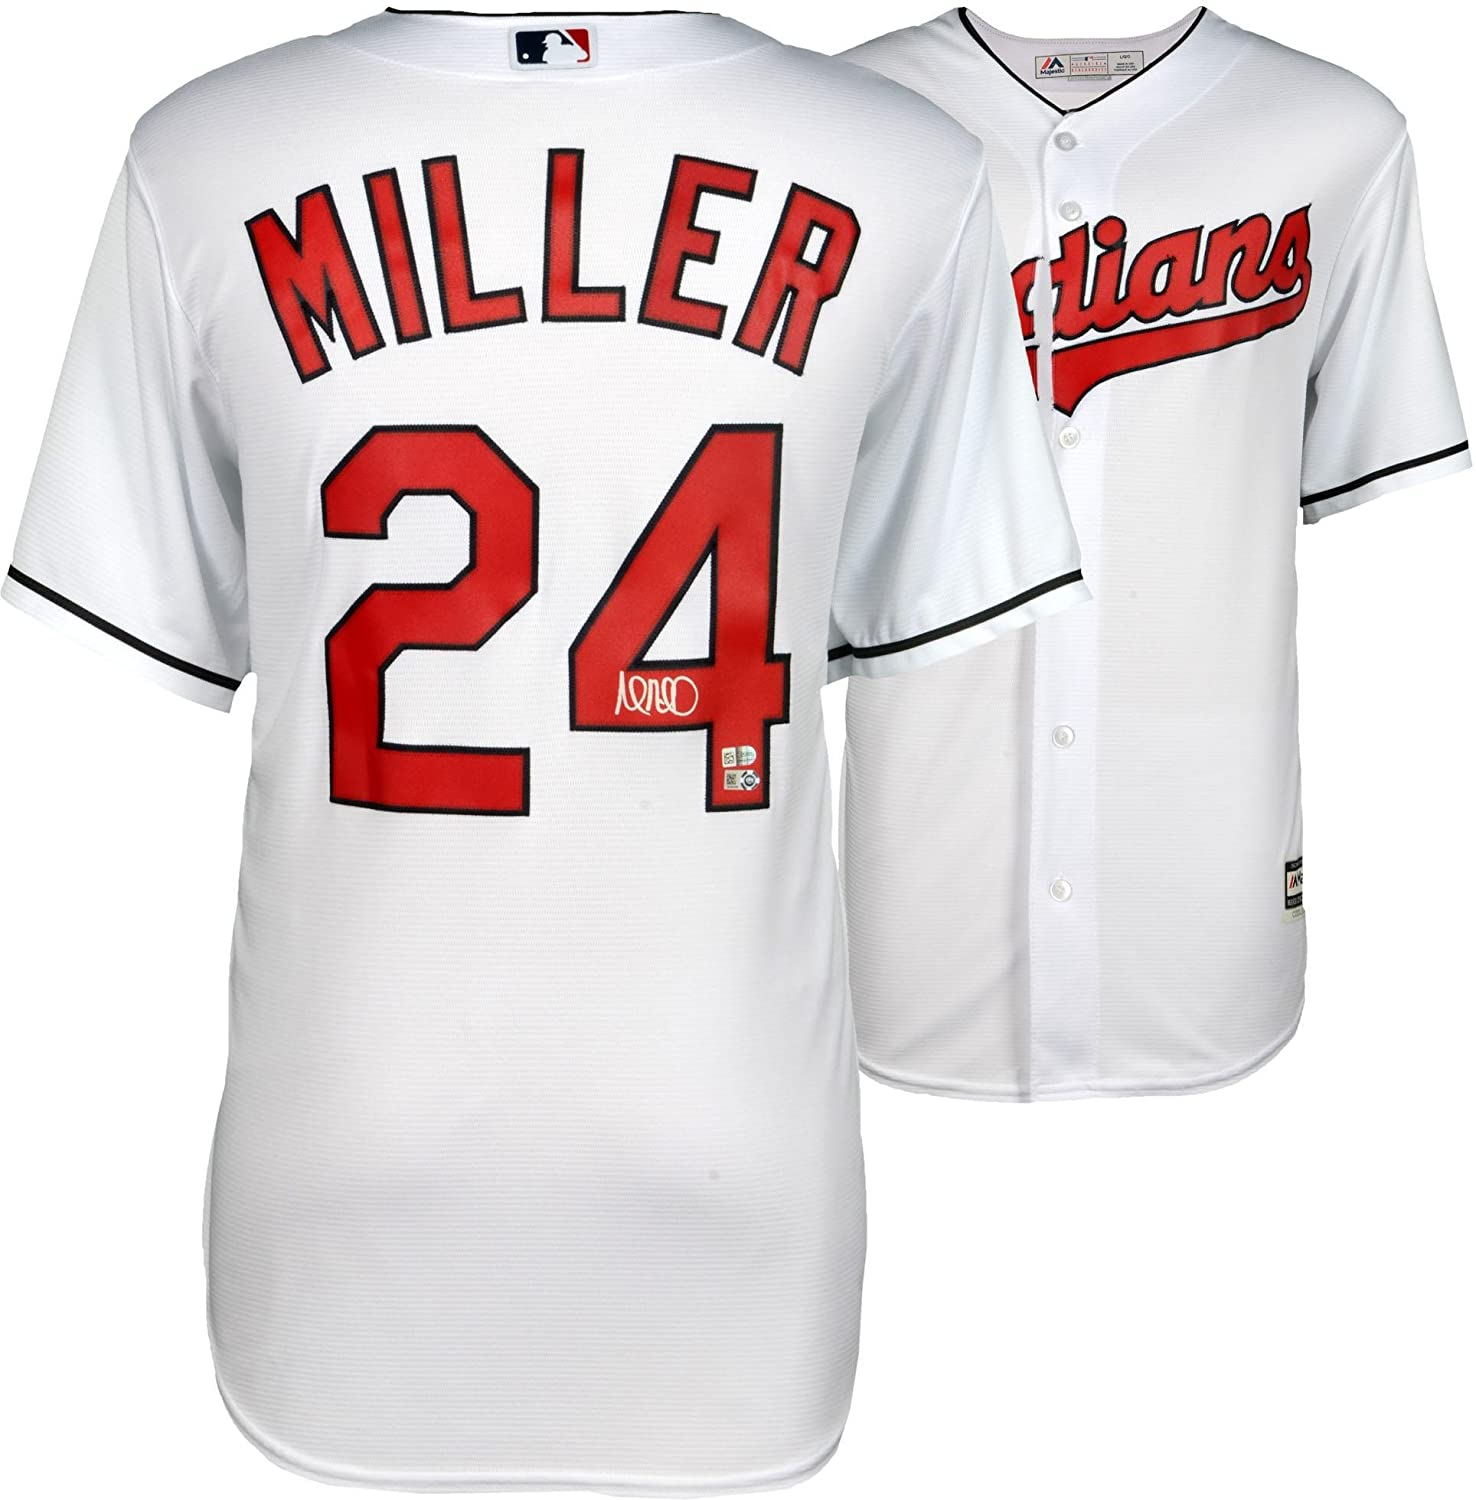 on sale 0c58d b8314 Andrew Miller Cleveland Indians Autographed Majestic White ...